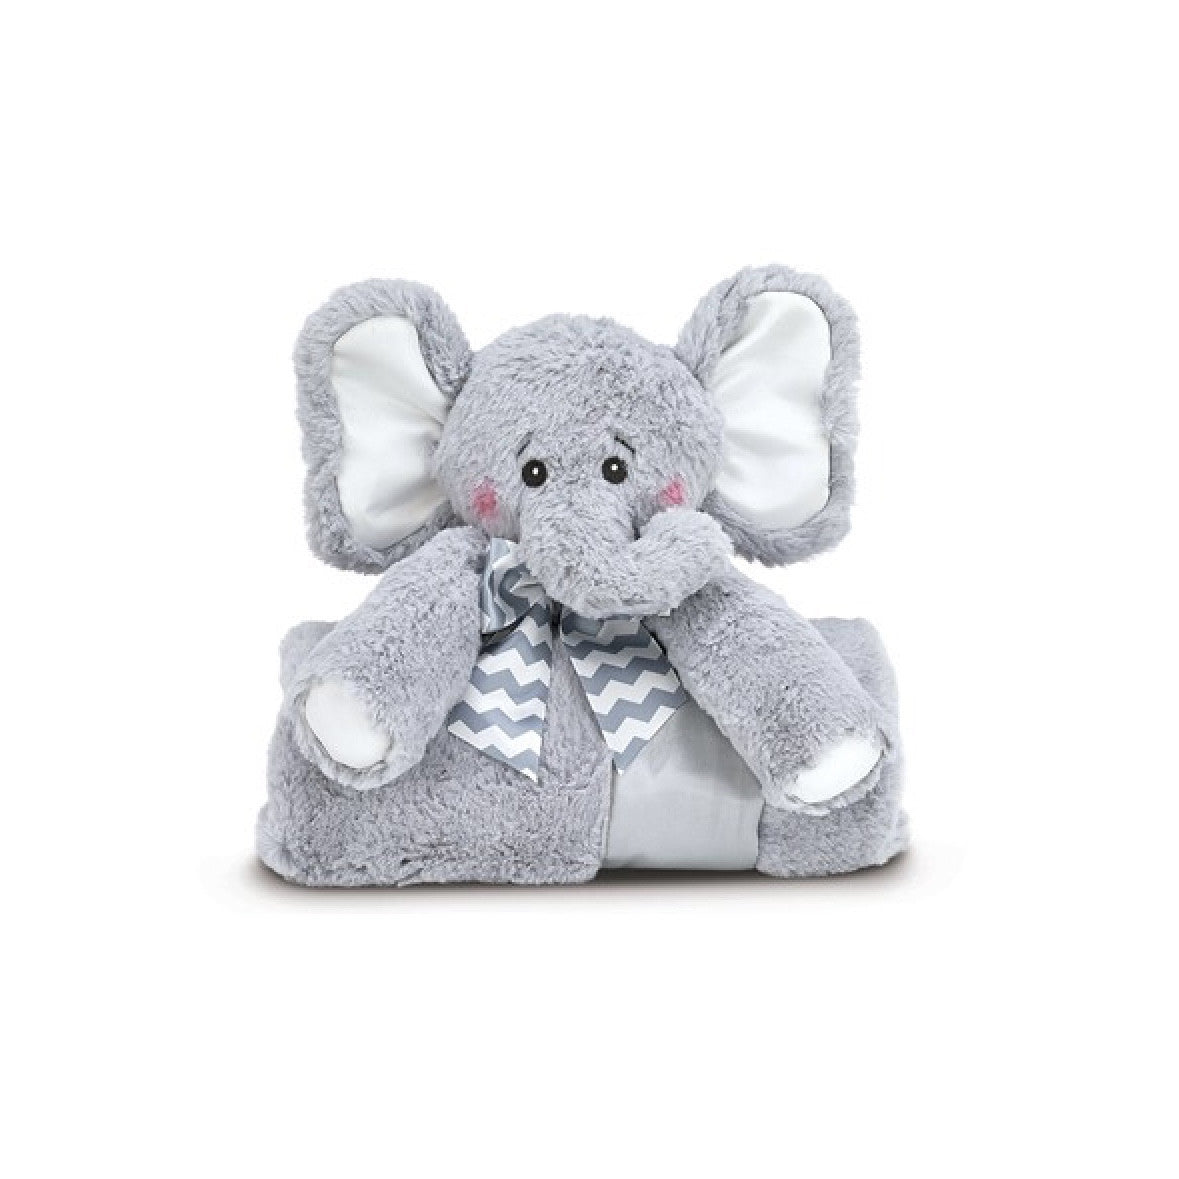 Lil' Spout Elephant - Plush Cuddle Me Blanket -  Children's - BC-Bearington Baby Collection - Bella Flor - Putti Fine Furnishings Toronto Canada - 1